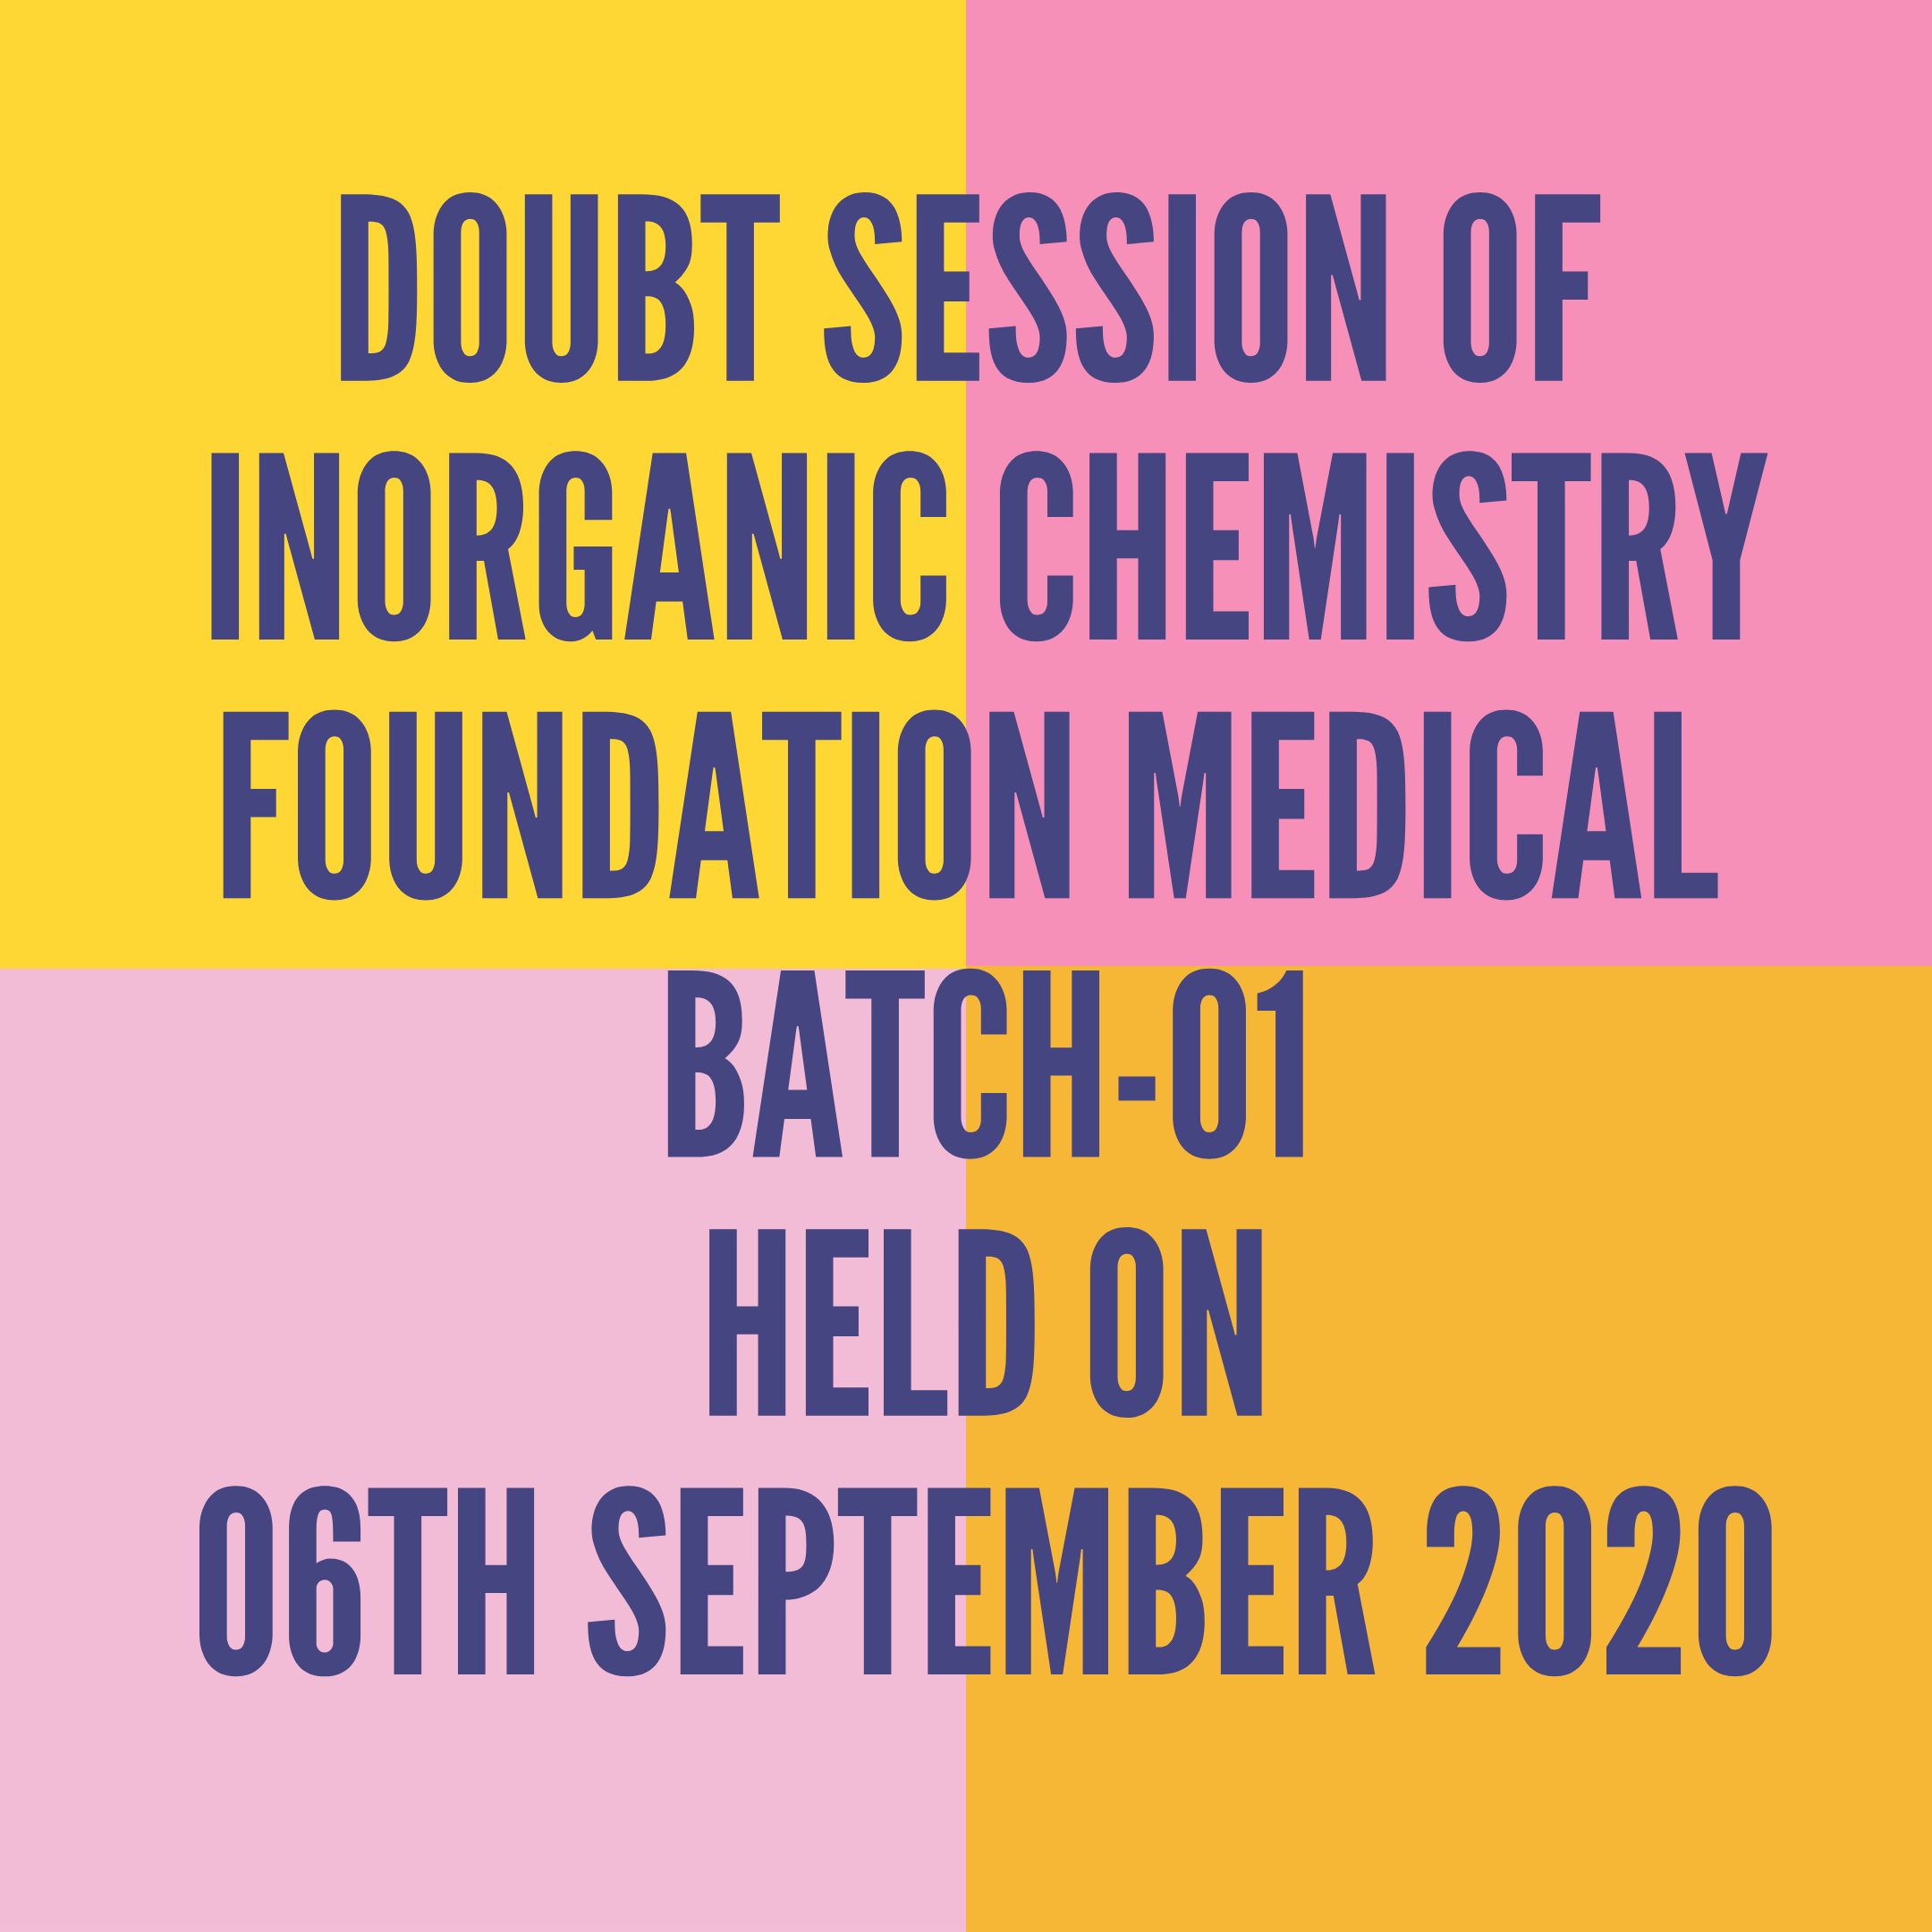 DOUBT SESSION OF INORGANIC FOUNDATION MEDICAL BATCH-01 HELD ON 06TH SEPTEMBER 2020